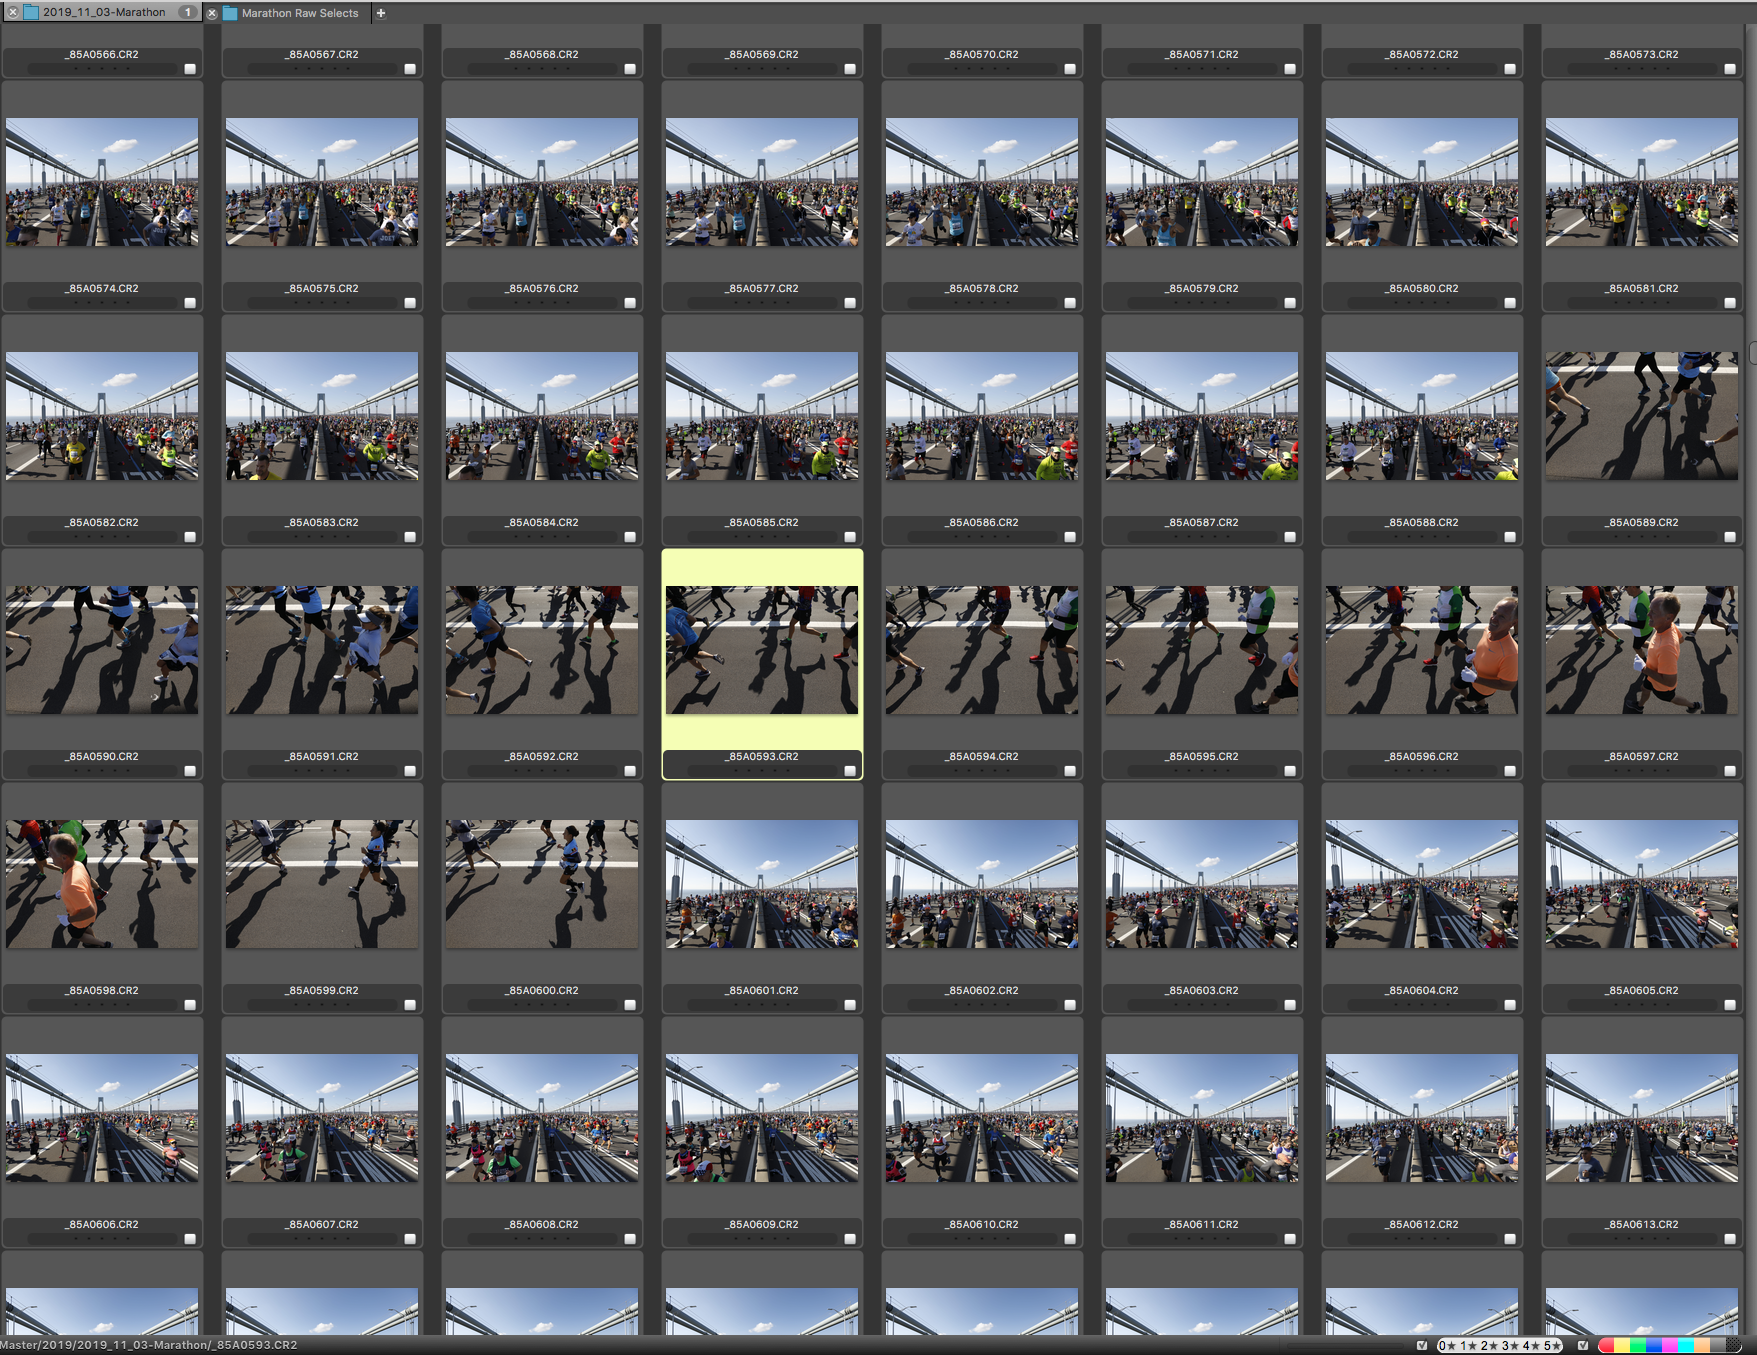 Ben Norman's full selection of photo thumbnails from the New York City marathon for the New York Times